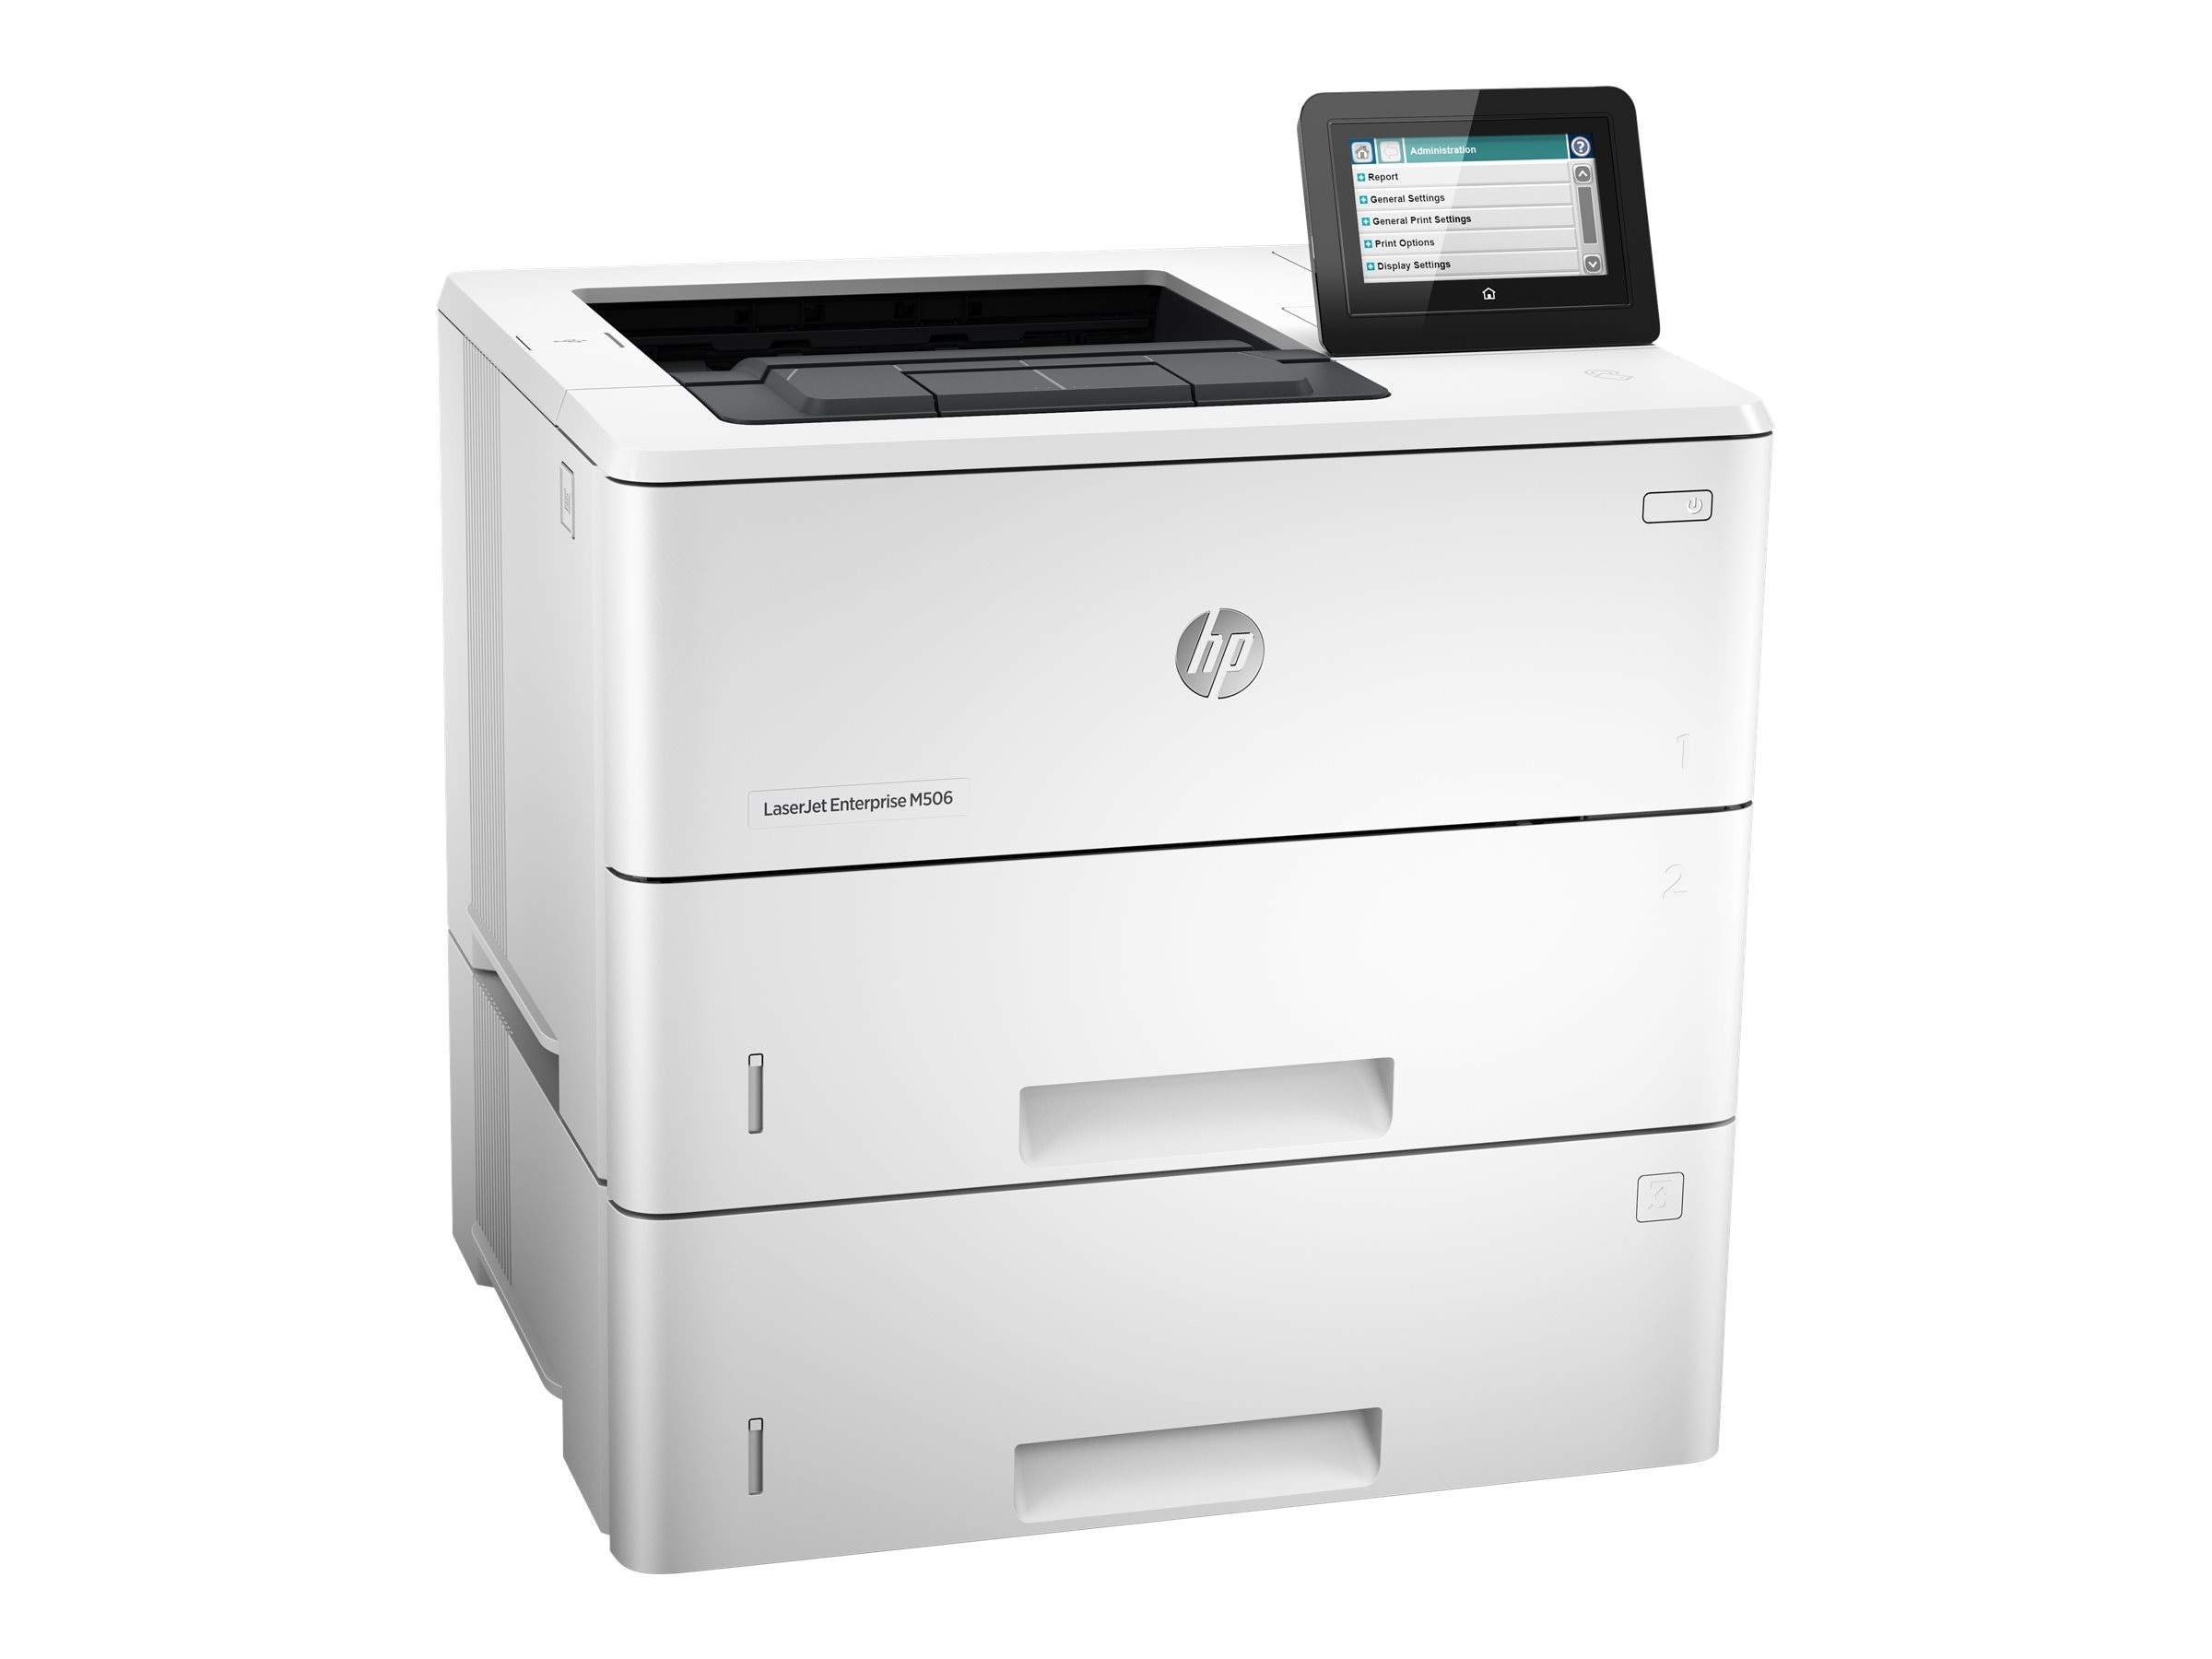 HP LaserJet Enterprise M506x Printer (VPA), F2A70A#BGJ